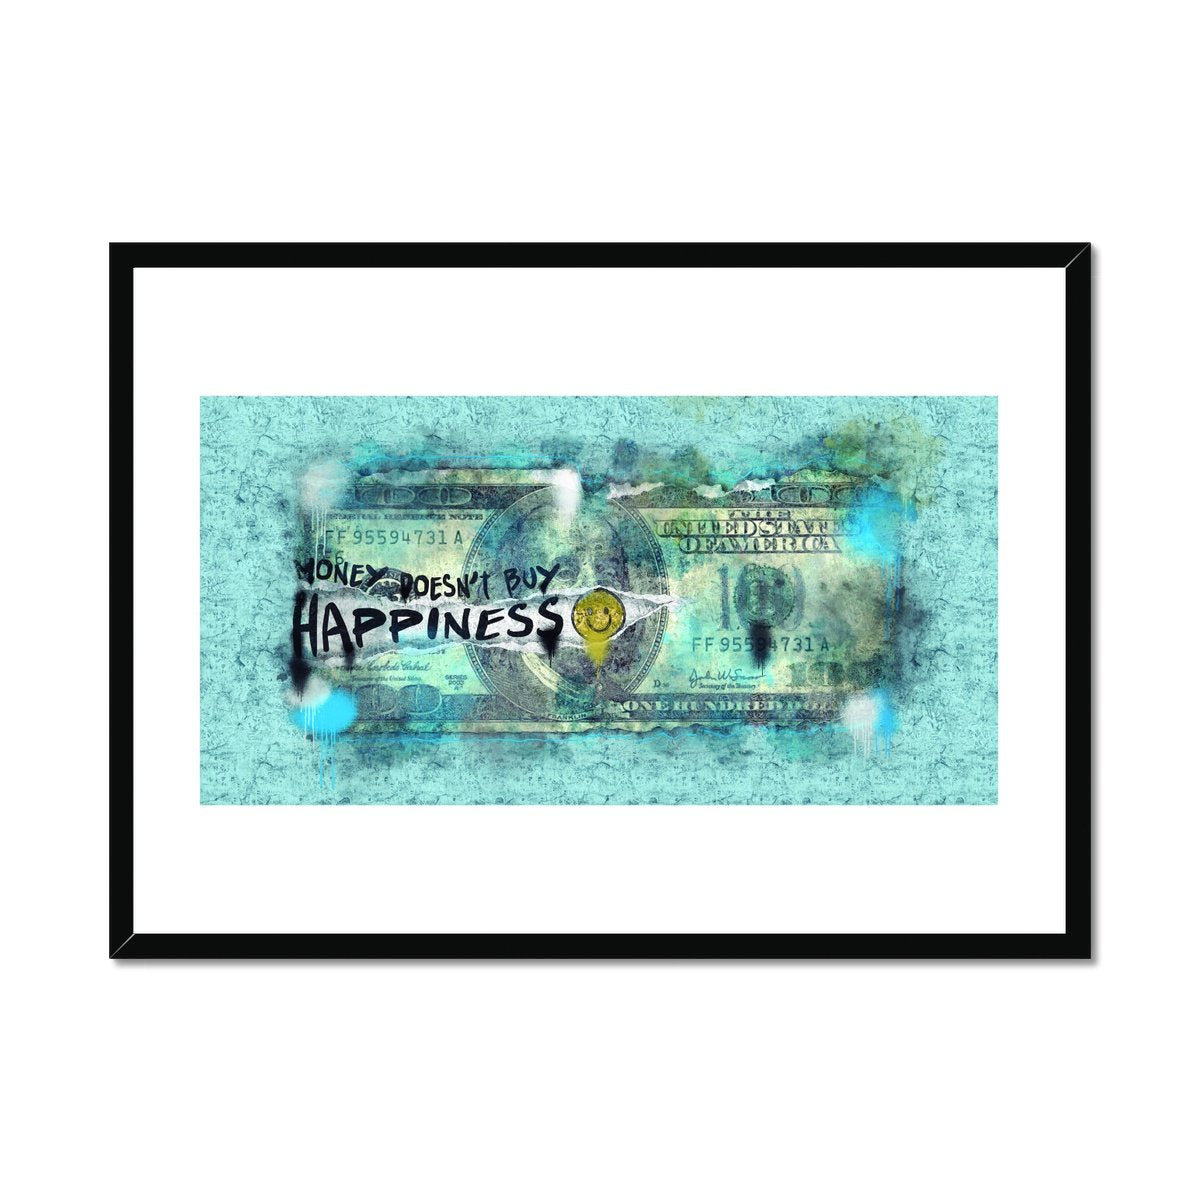 Money Doesn't Buy Happiness - Poster Framed